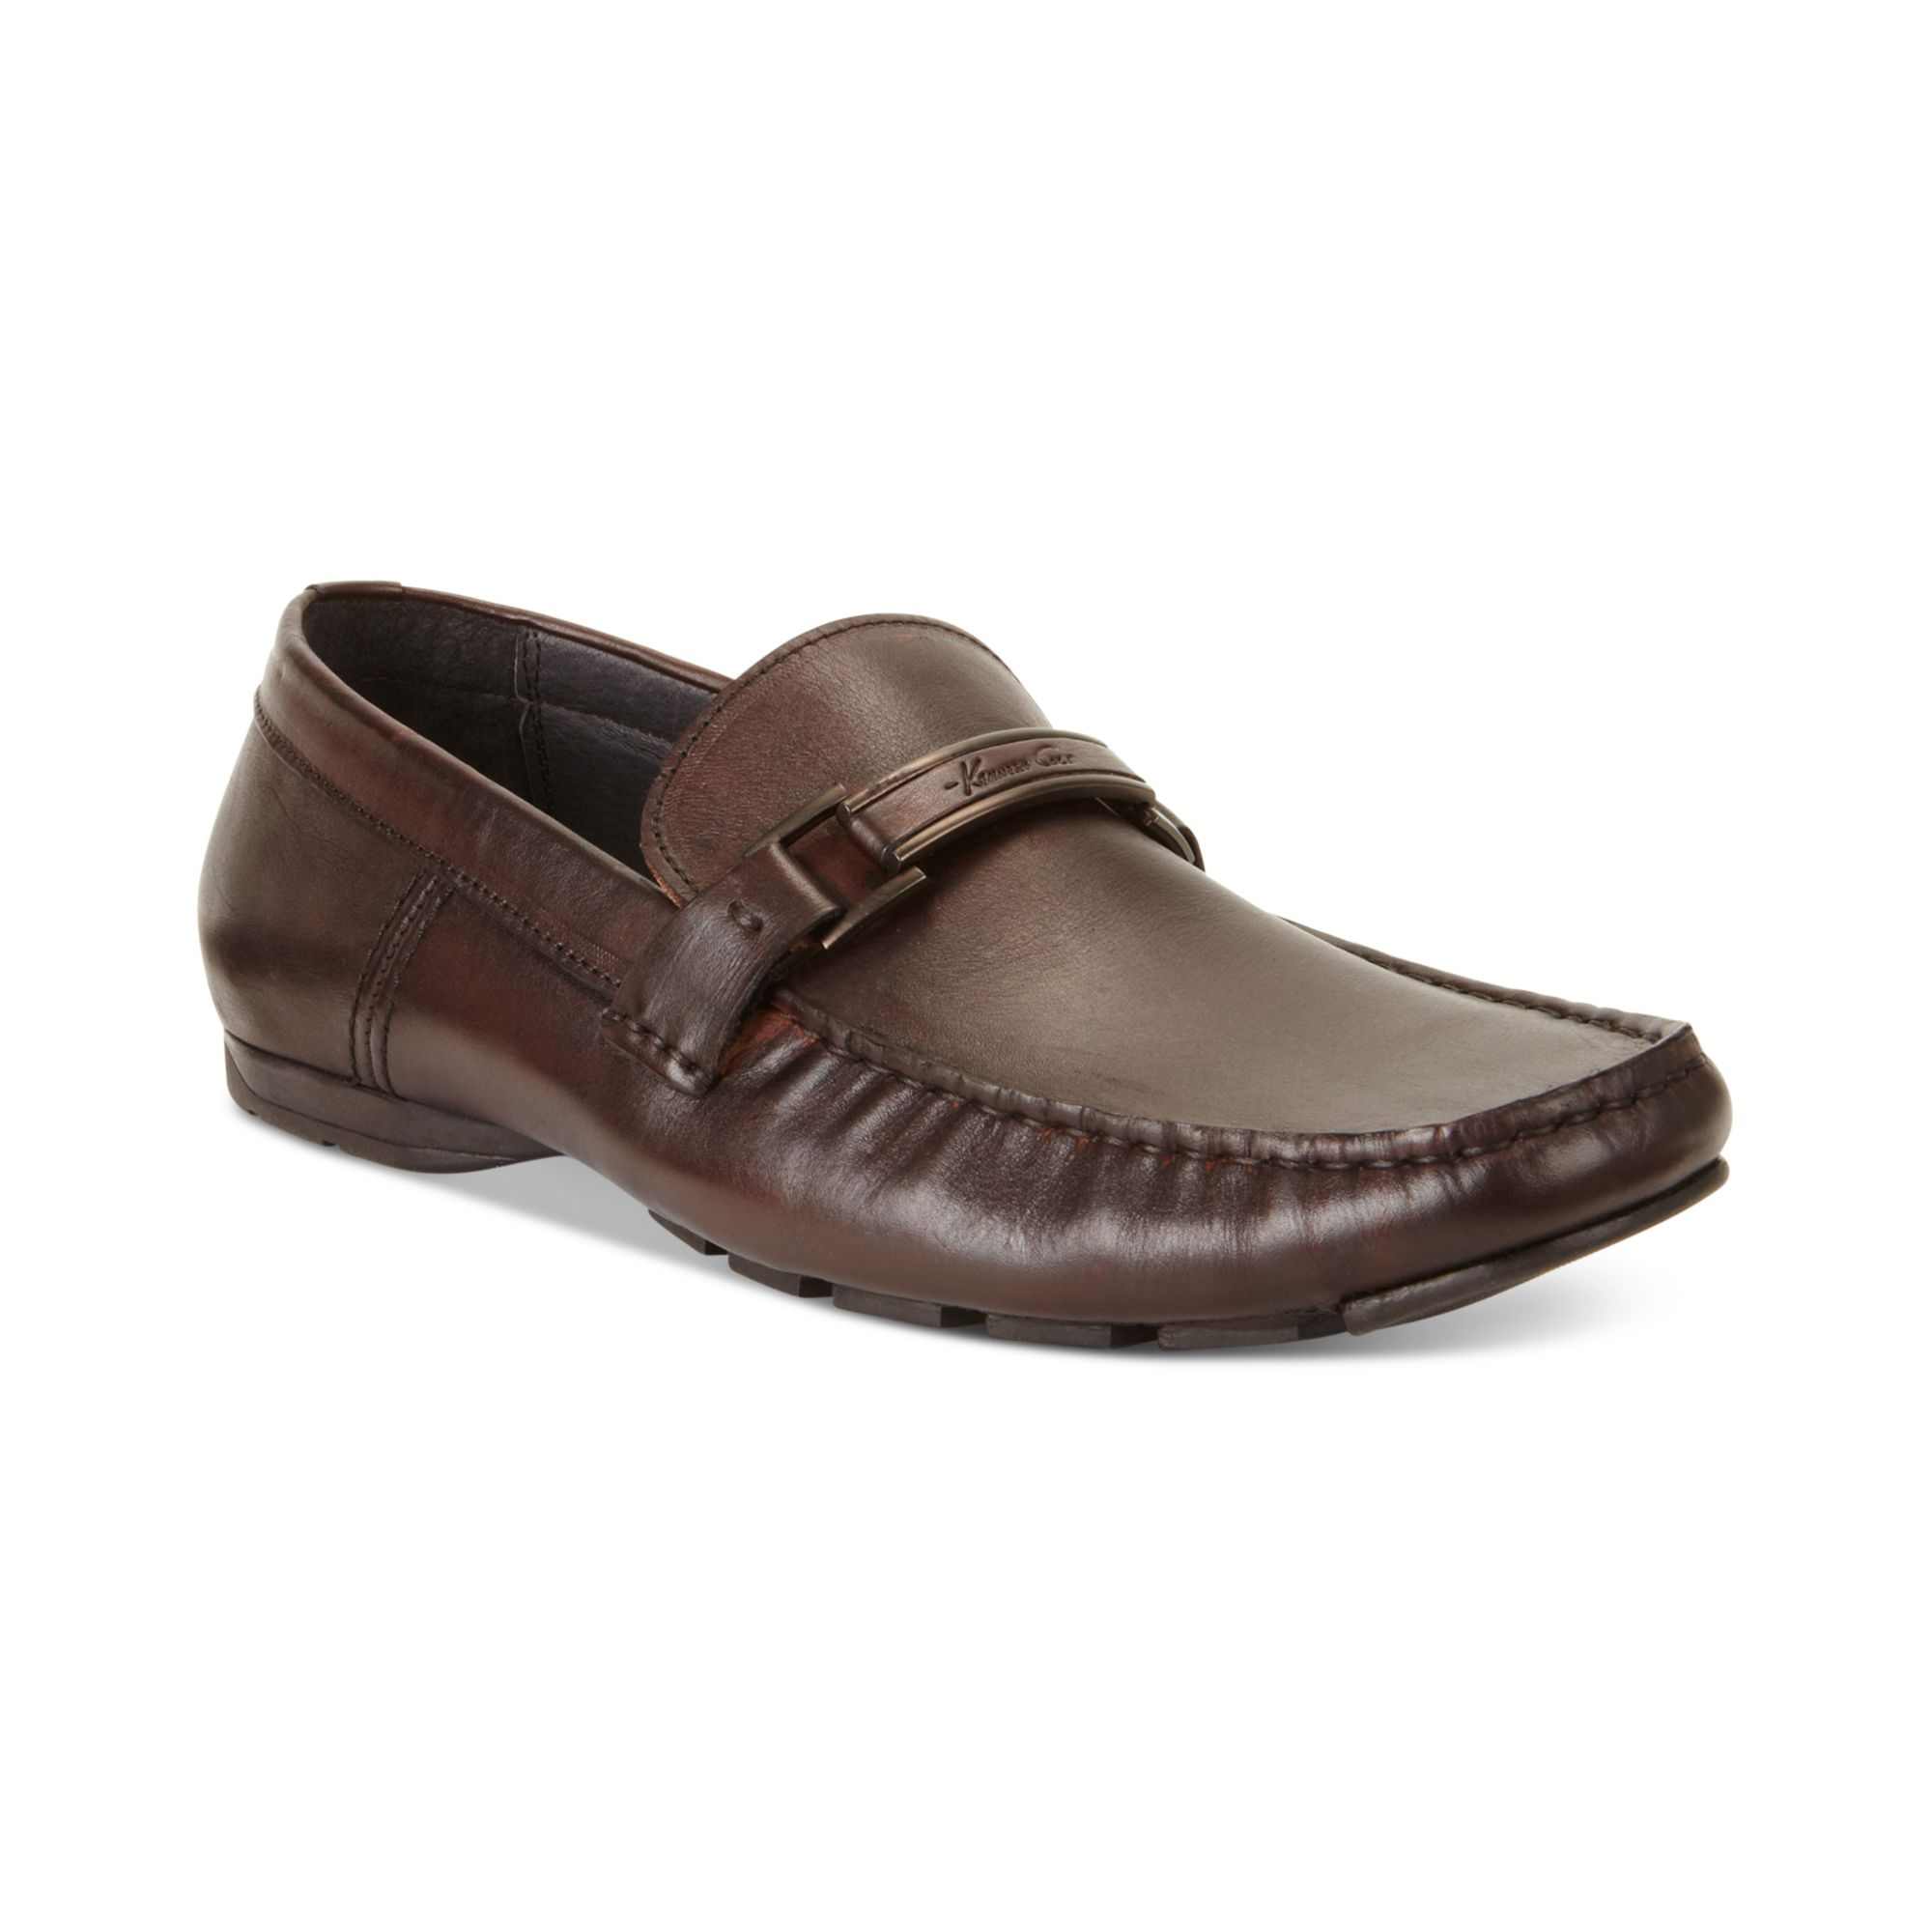 kenneth men Shop for men's dress shoes by kenneth cole find the latest styles in italian shoes by kenneth cole & get free shipping on orders over $99 from men's wearhouse.